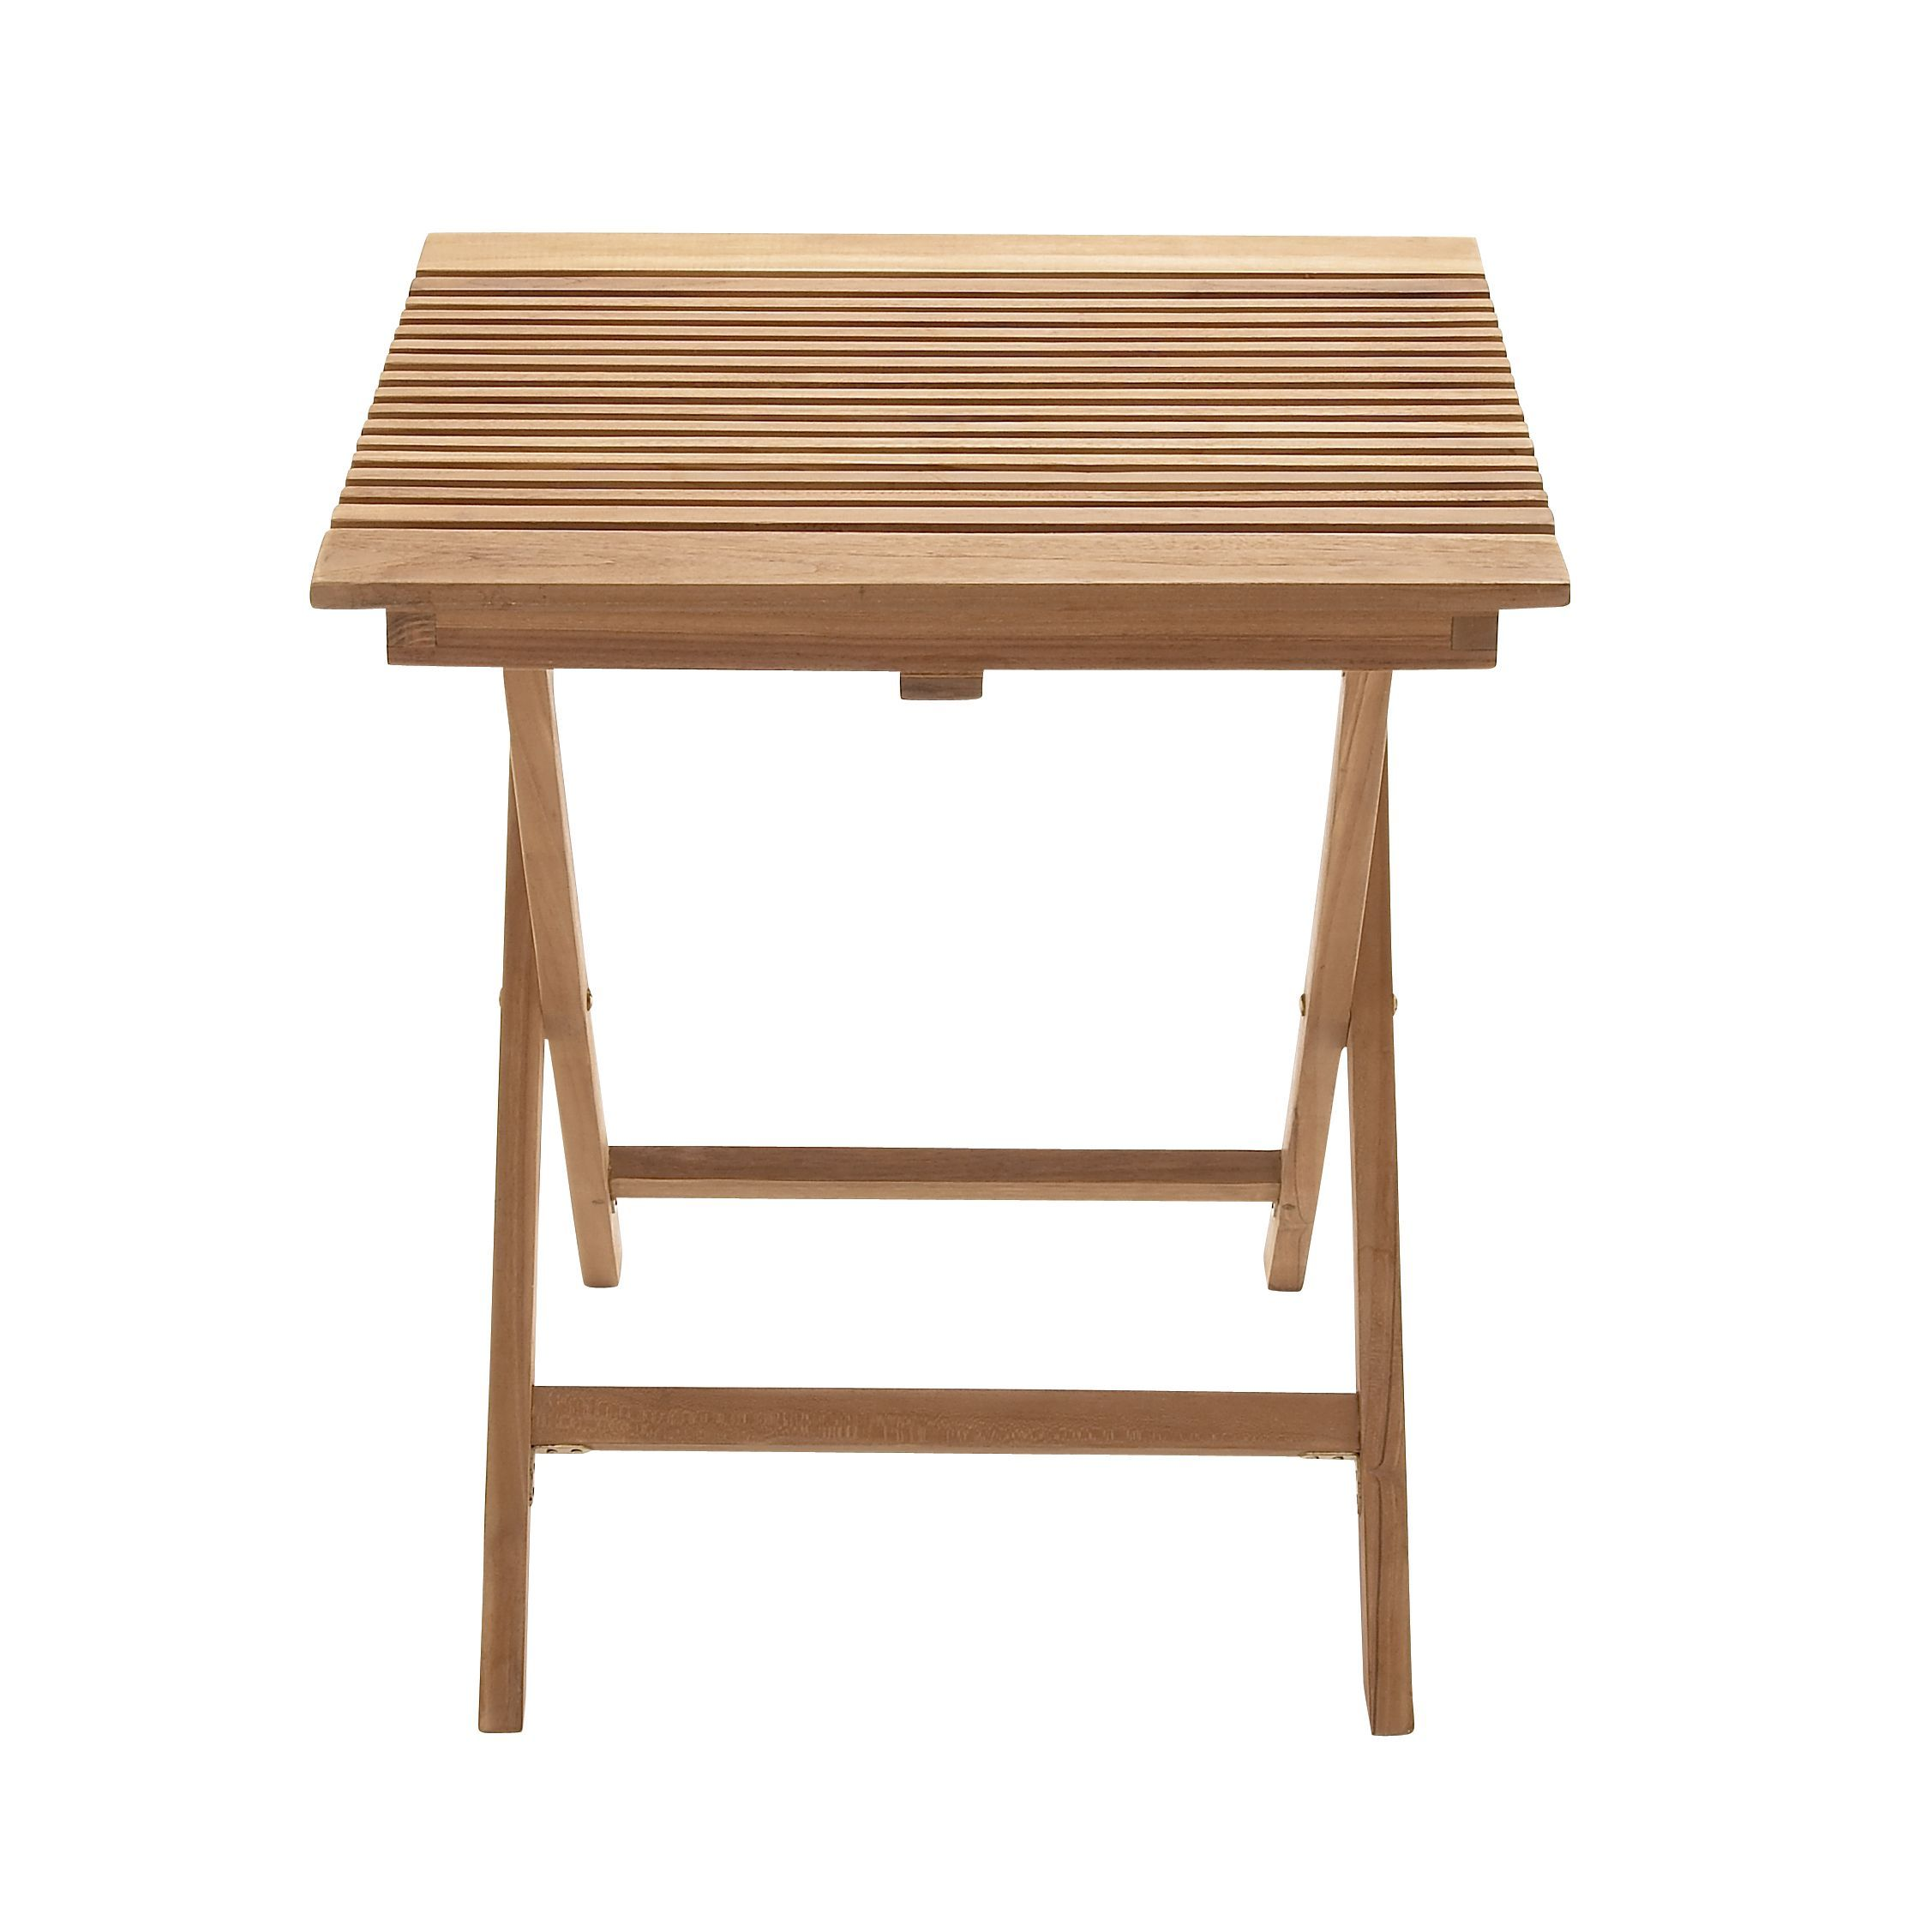 Outdoor square teak folding table see description brown patio